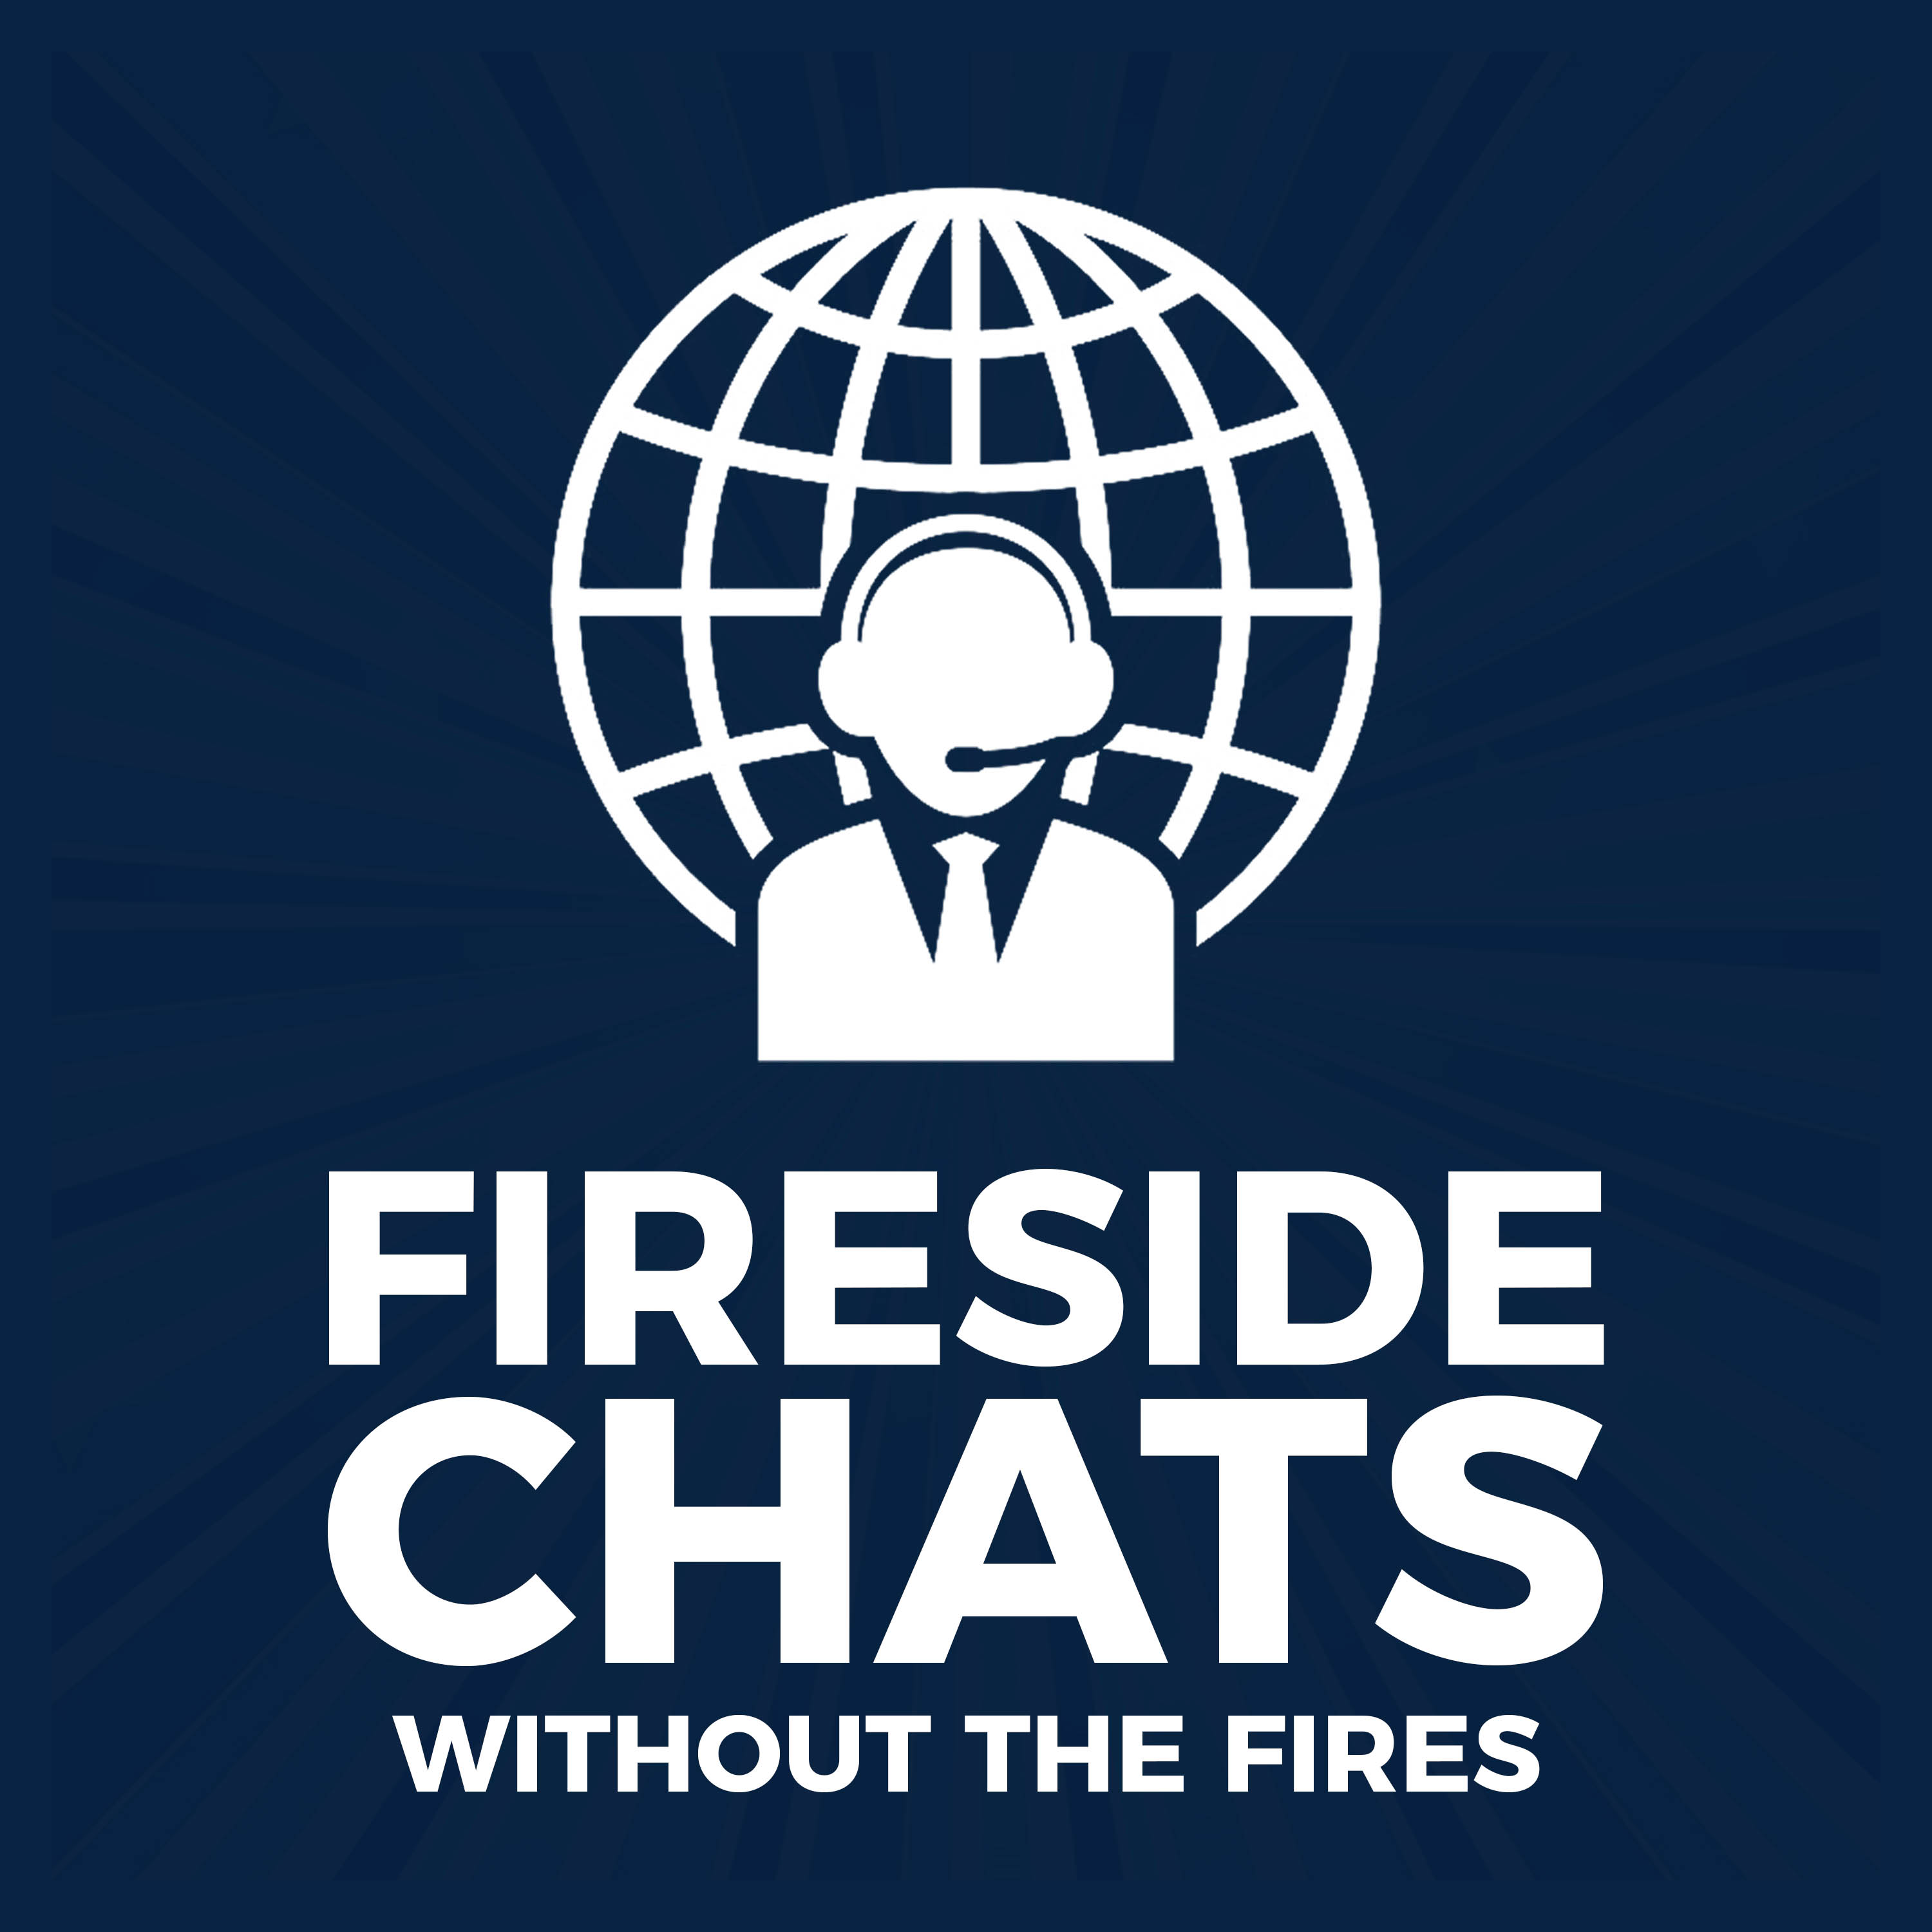 Fireside chats without the fires